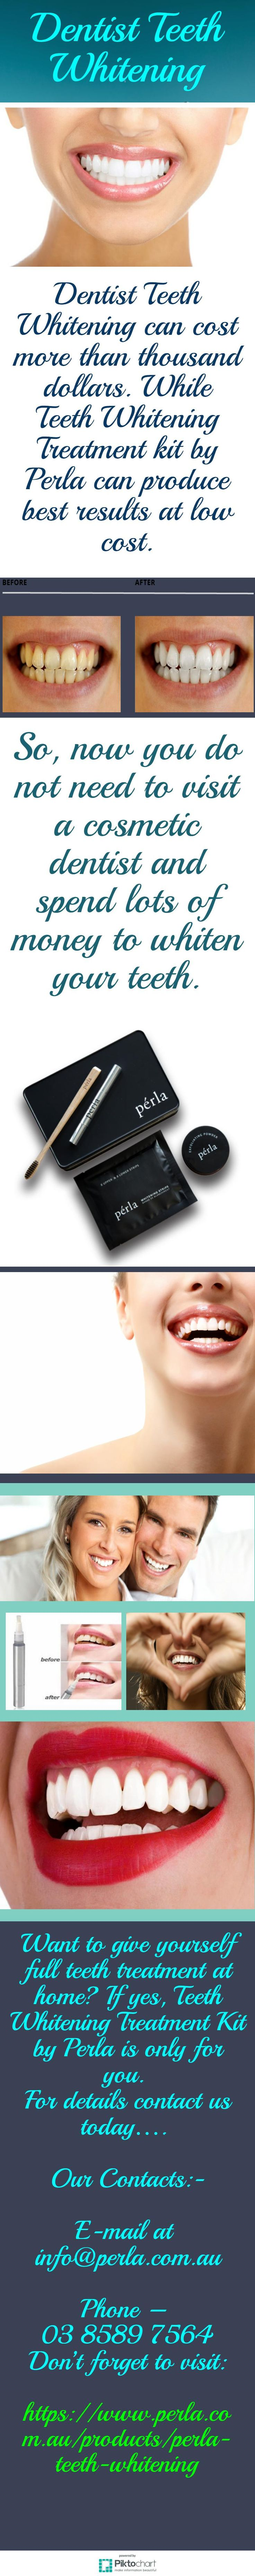 Dentist Teeth Whitening can cost much. On the other hand, with Teeth whitening treatment kit by Perla you can whiten your teeth at home in less cost. For more info, visit link: https://www.perla.com.au/products/perla-teeth-whitening